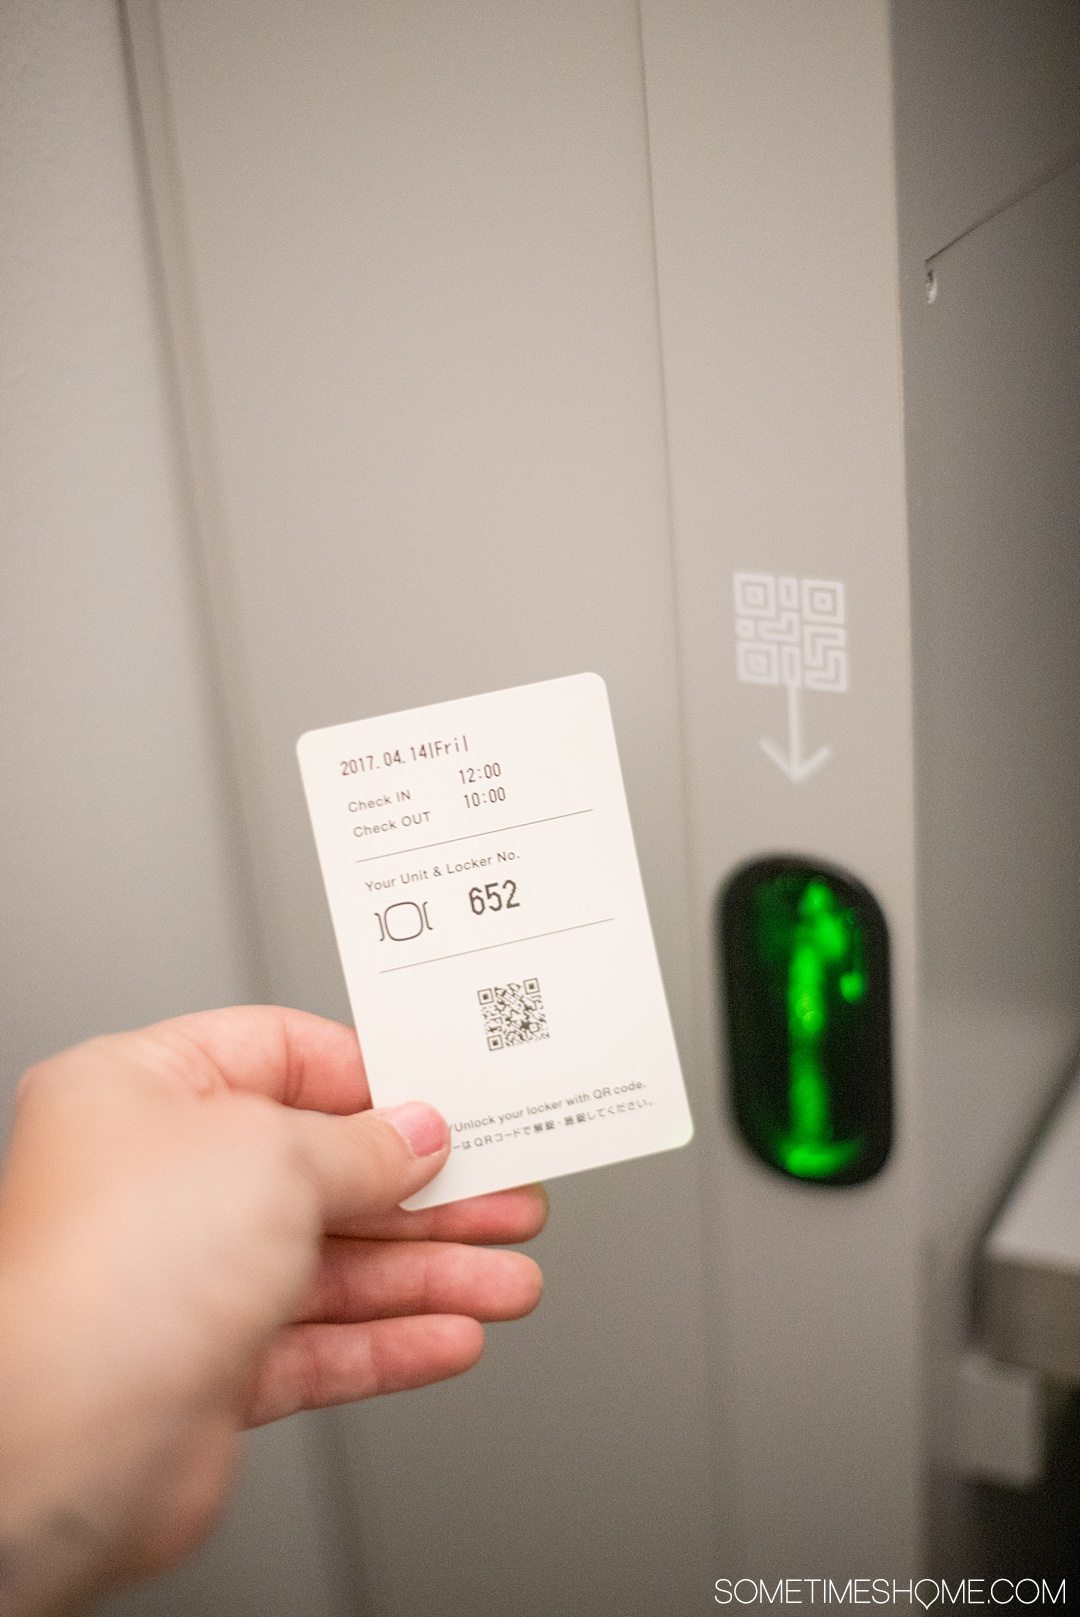 What It's Like to Stay in 9 Hours Pod Hotel in Shinjuku Japan by Sometimes Home travel site. A look inside and advice, pros and cons. Photo of the locker each guest gets.